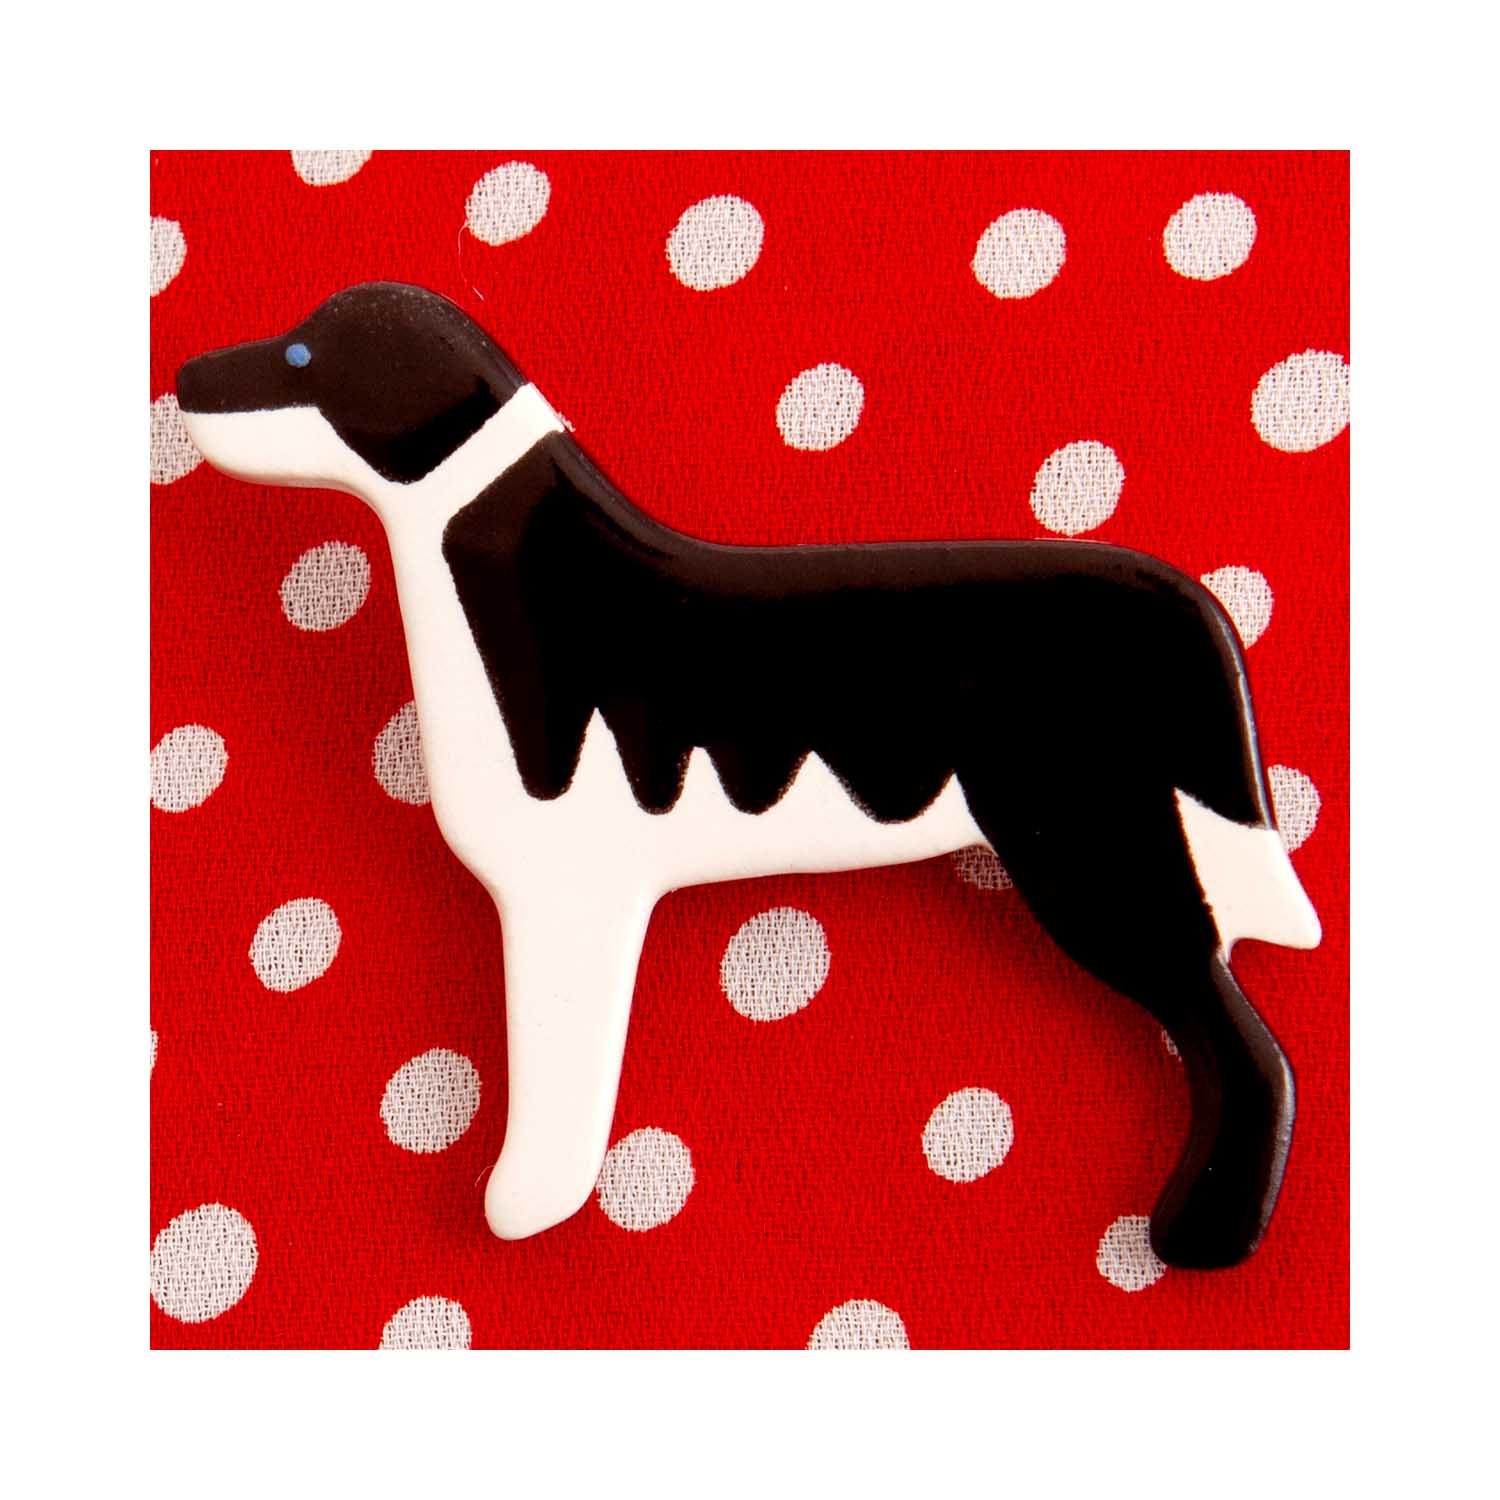 Dog Lover Gifts available at Dog Krazy Gifts – Ceramic Border Collie Brooch by Mary Goldberg of Stockwell Ceramics, Just Part Of Our Collection Of Collie Dog Themed Gifts, Available At www.dogkrazygifts.co.uk